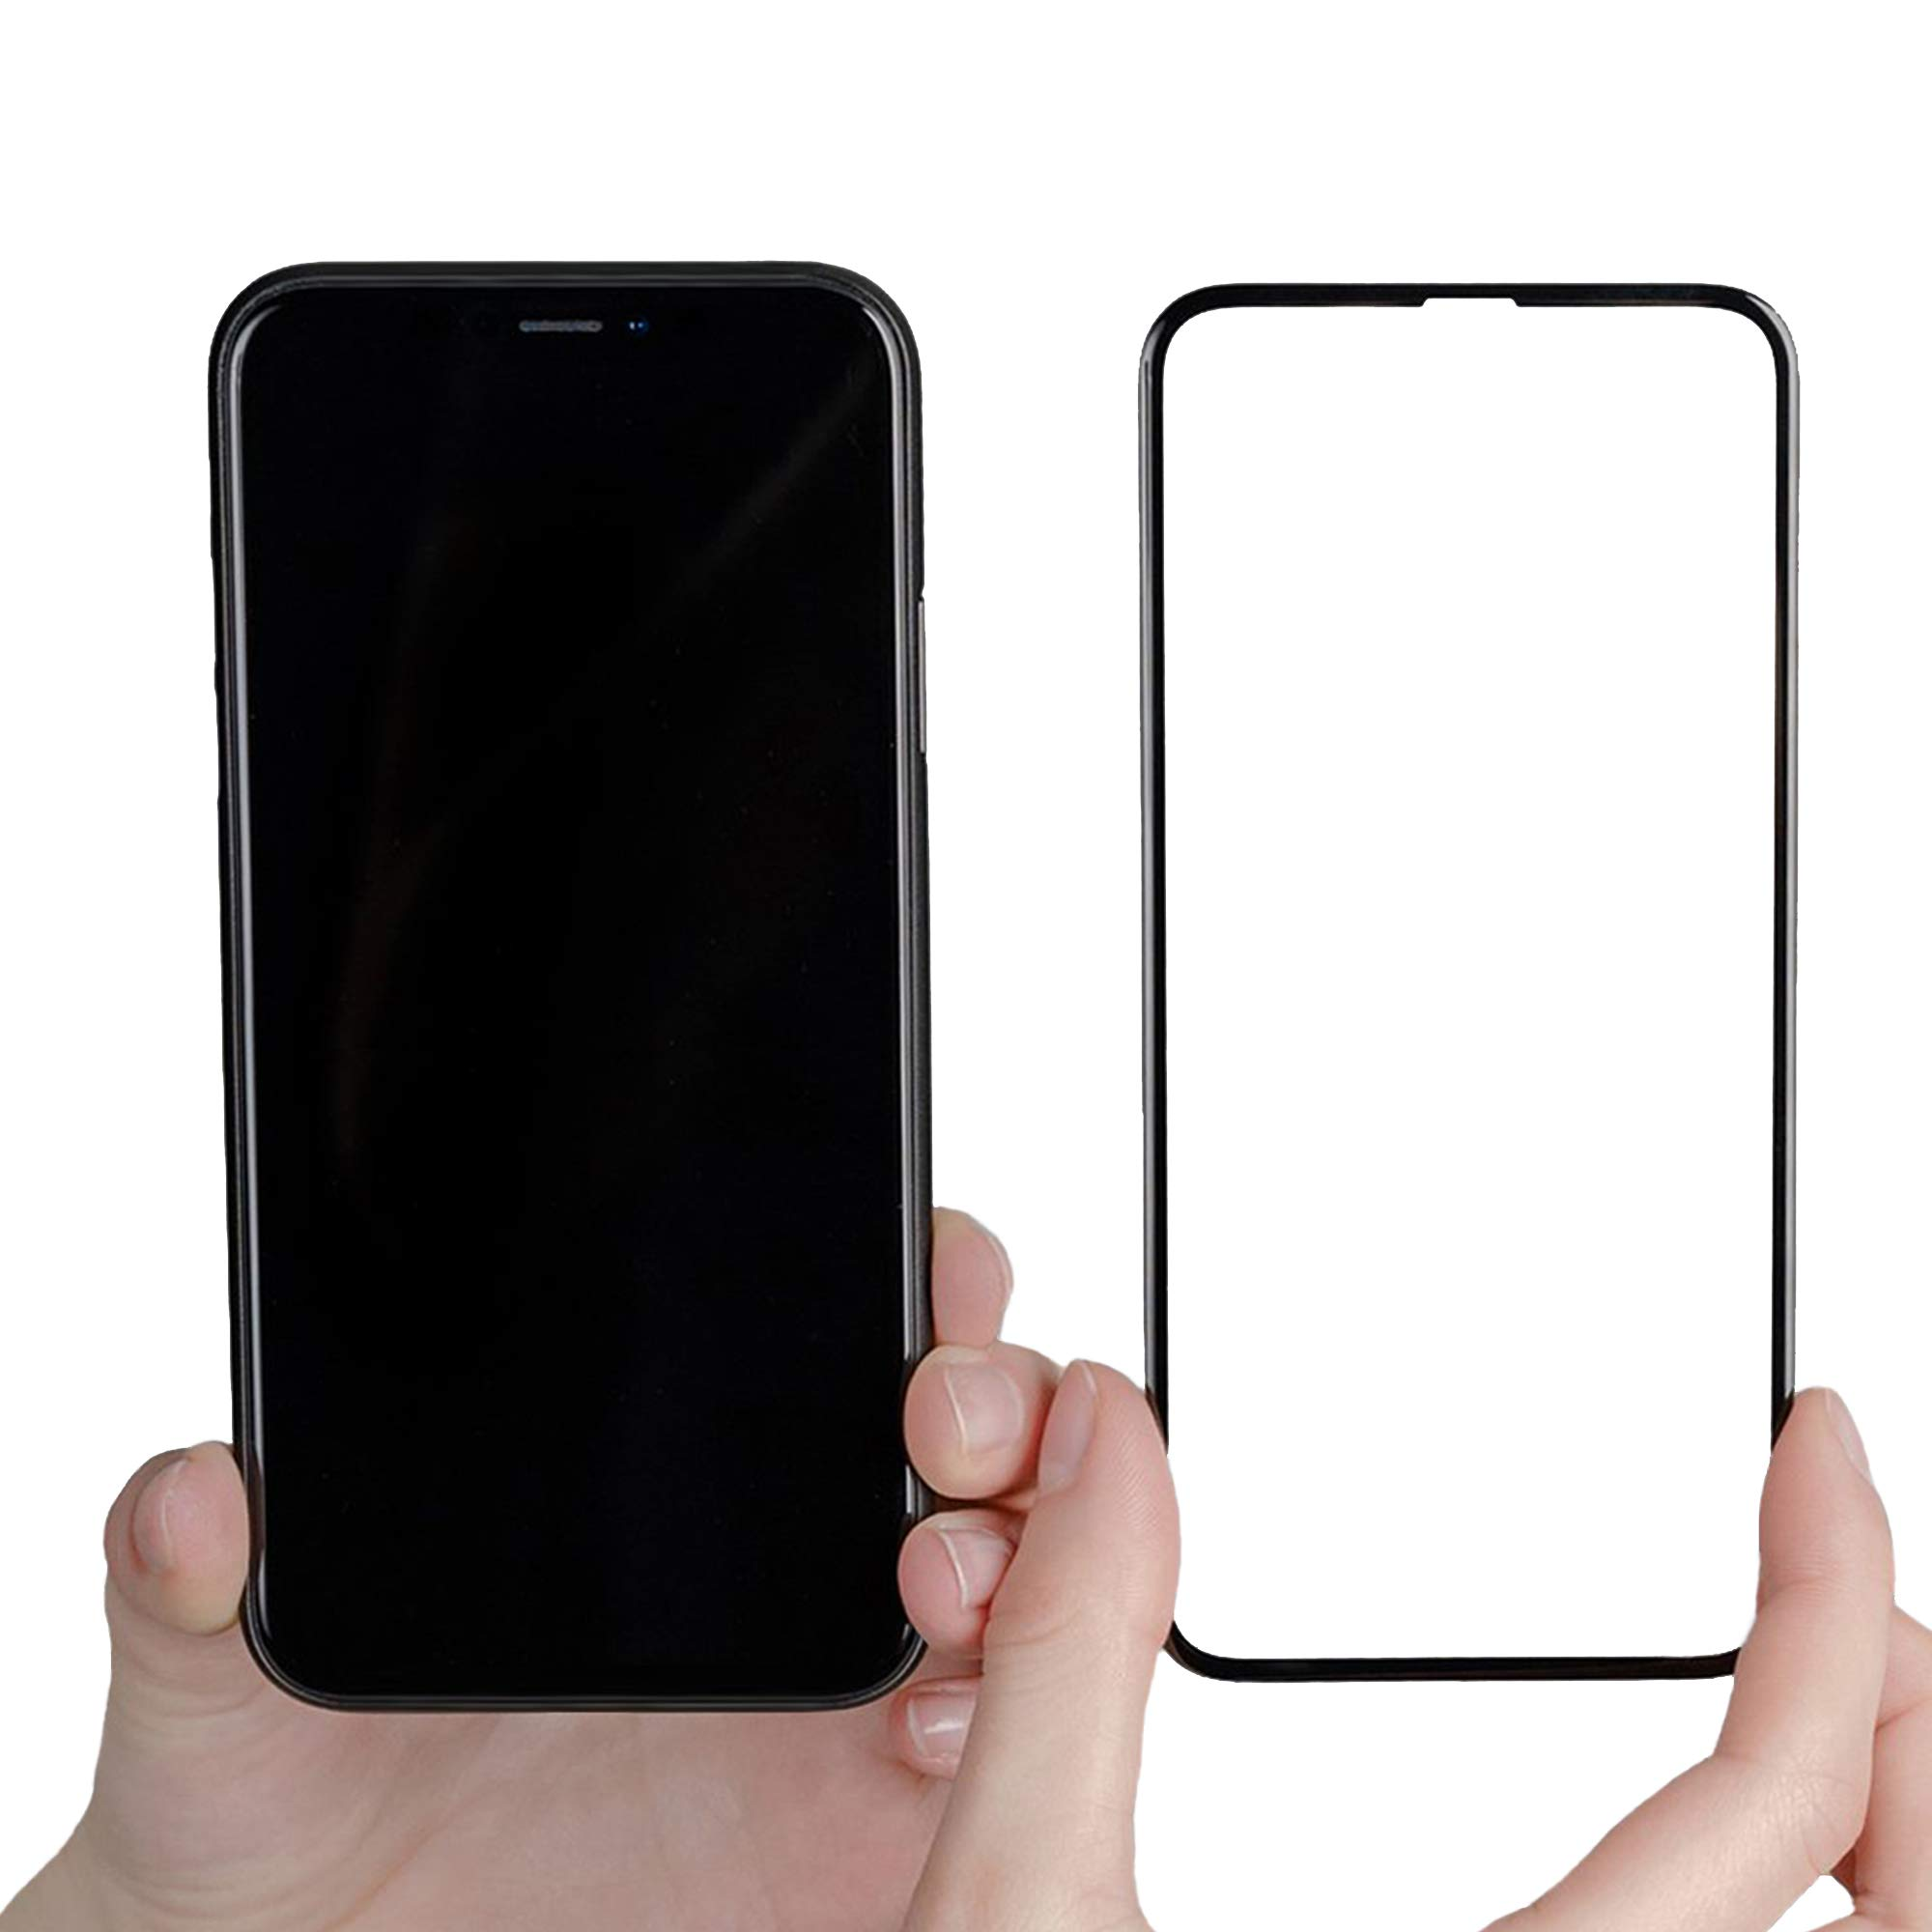 PEEL Screen Protector for iPhone 11 Pro Max | Premium Edge-to-Edge Tempered Glass Provides Protection from Impact, Drops and Scratches | Ultra Clear & Flawless Touch Screen Functionality